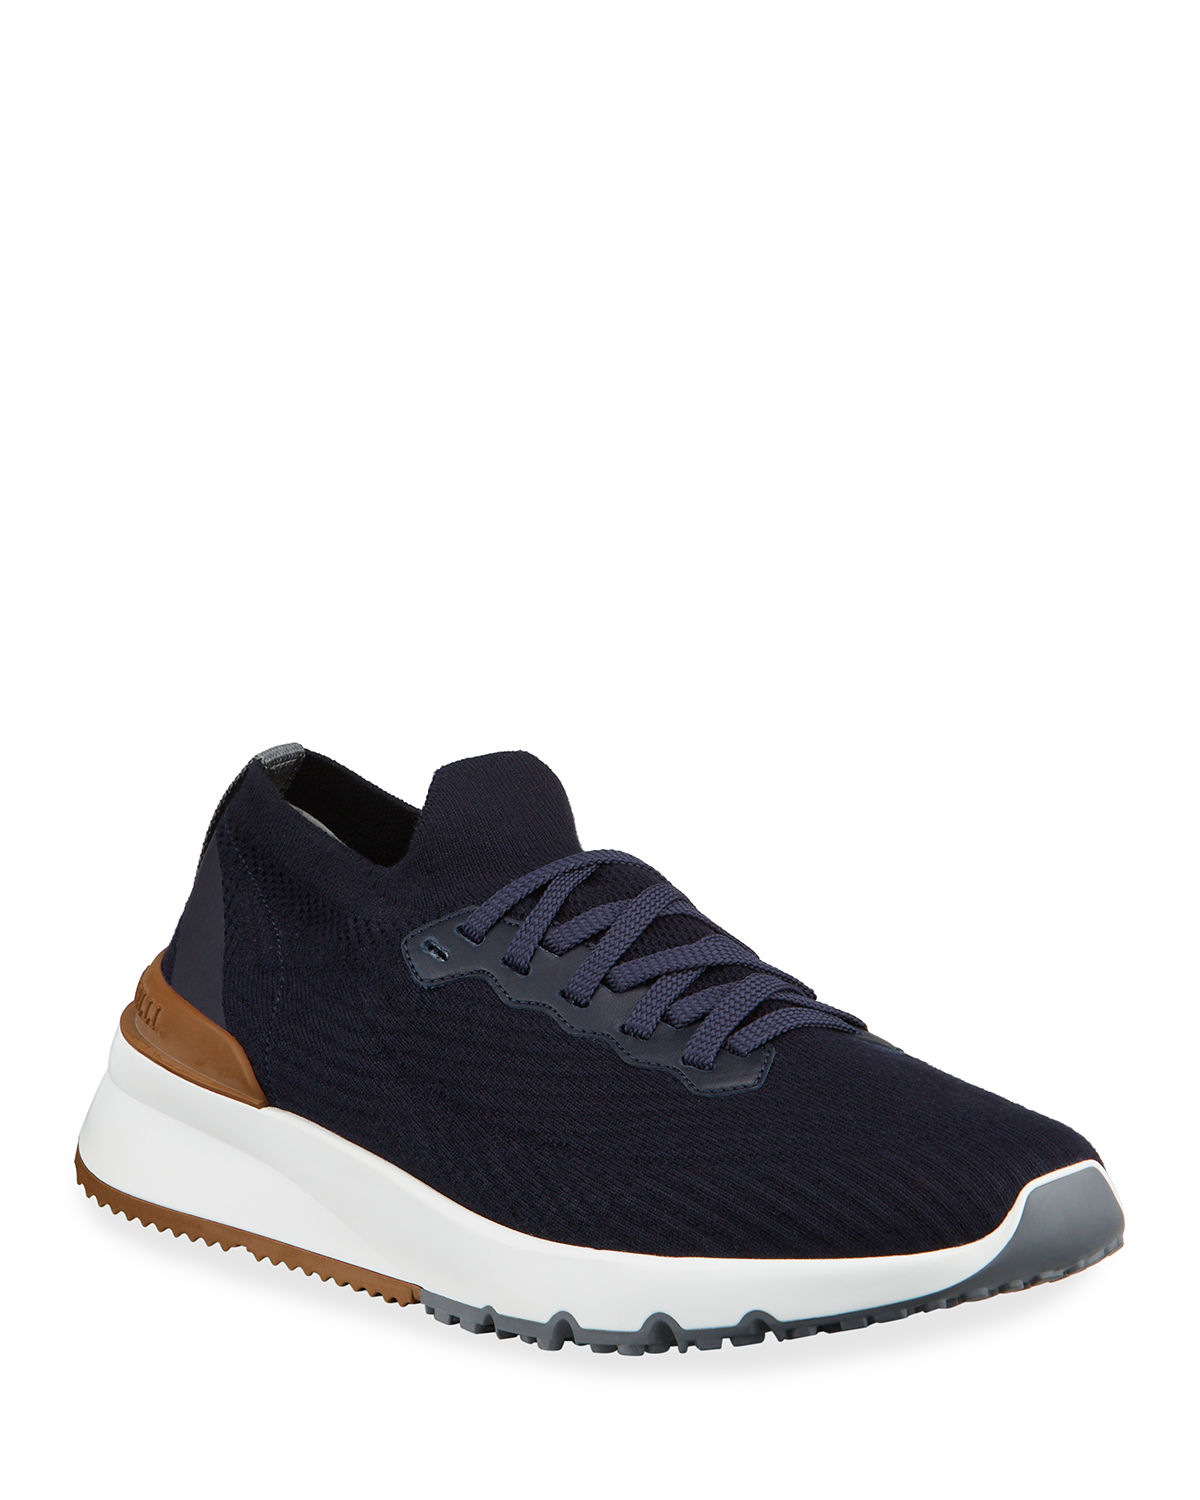 Brunello Cucinelli Leathers MEN'S ACTIVE KNIT TRAINER SNEAKERS